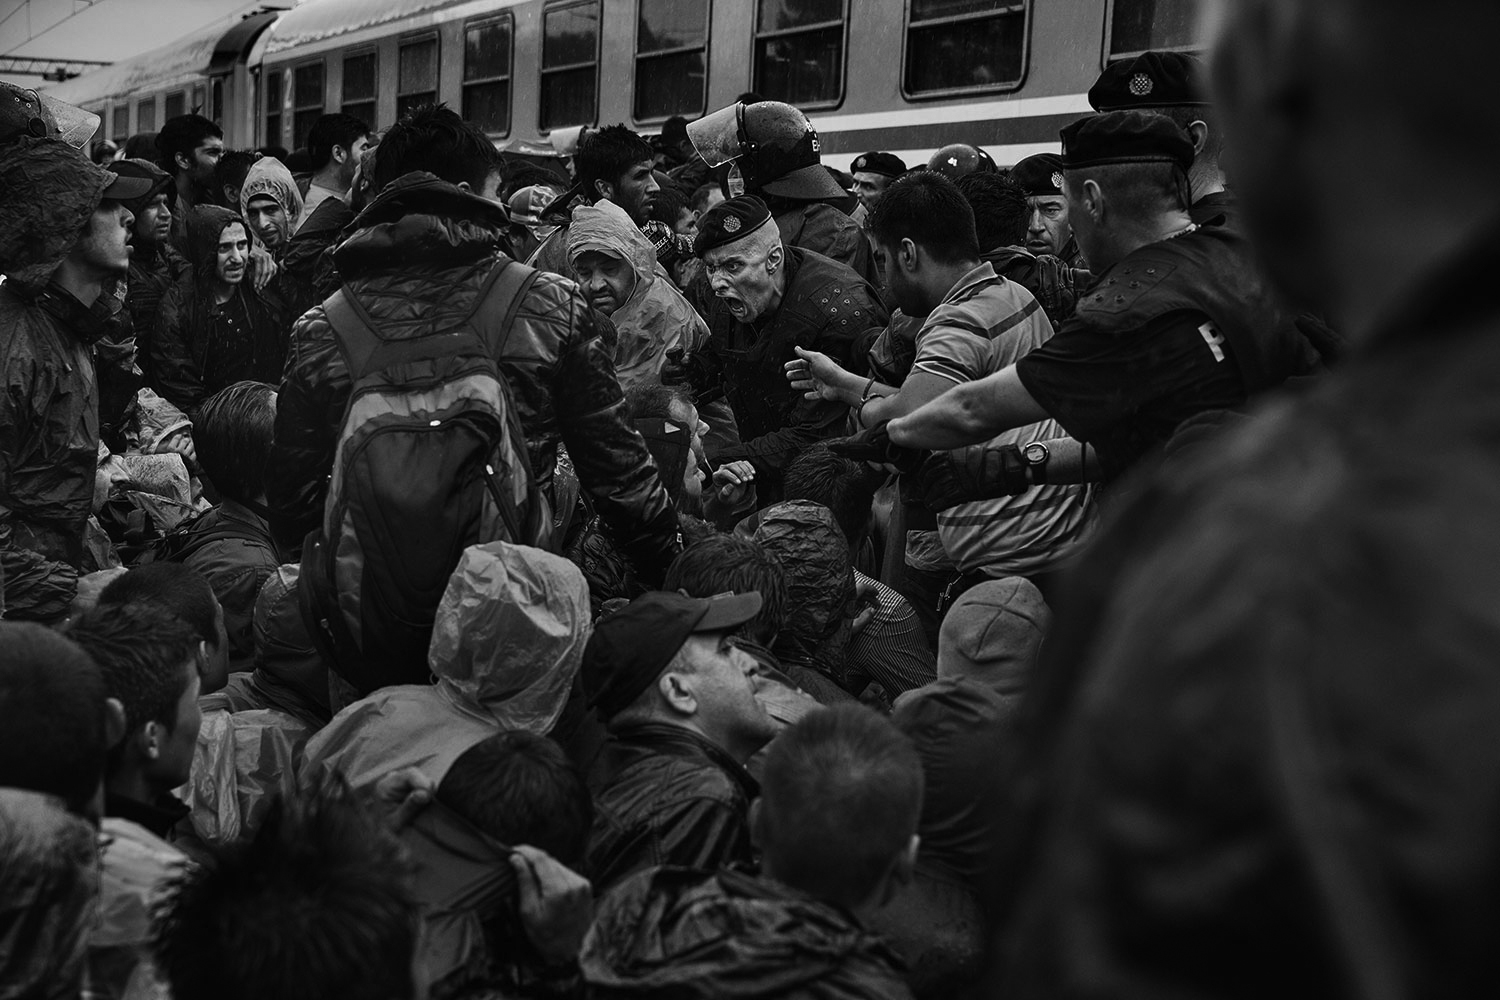 A police officer screams at refugees as they attempt to board a train in Tovarnik, Croatia, Sept. 17, 2015.